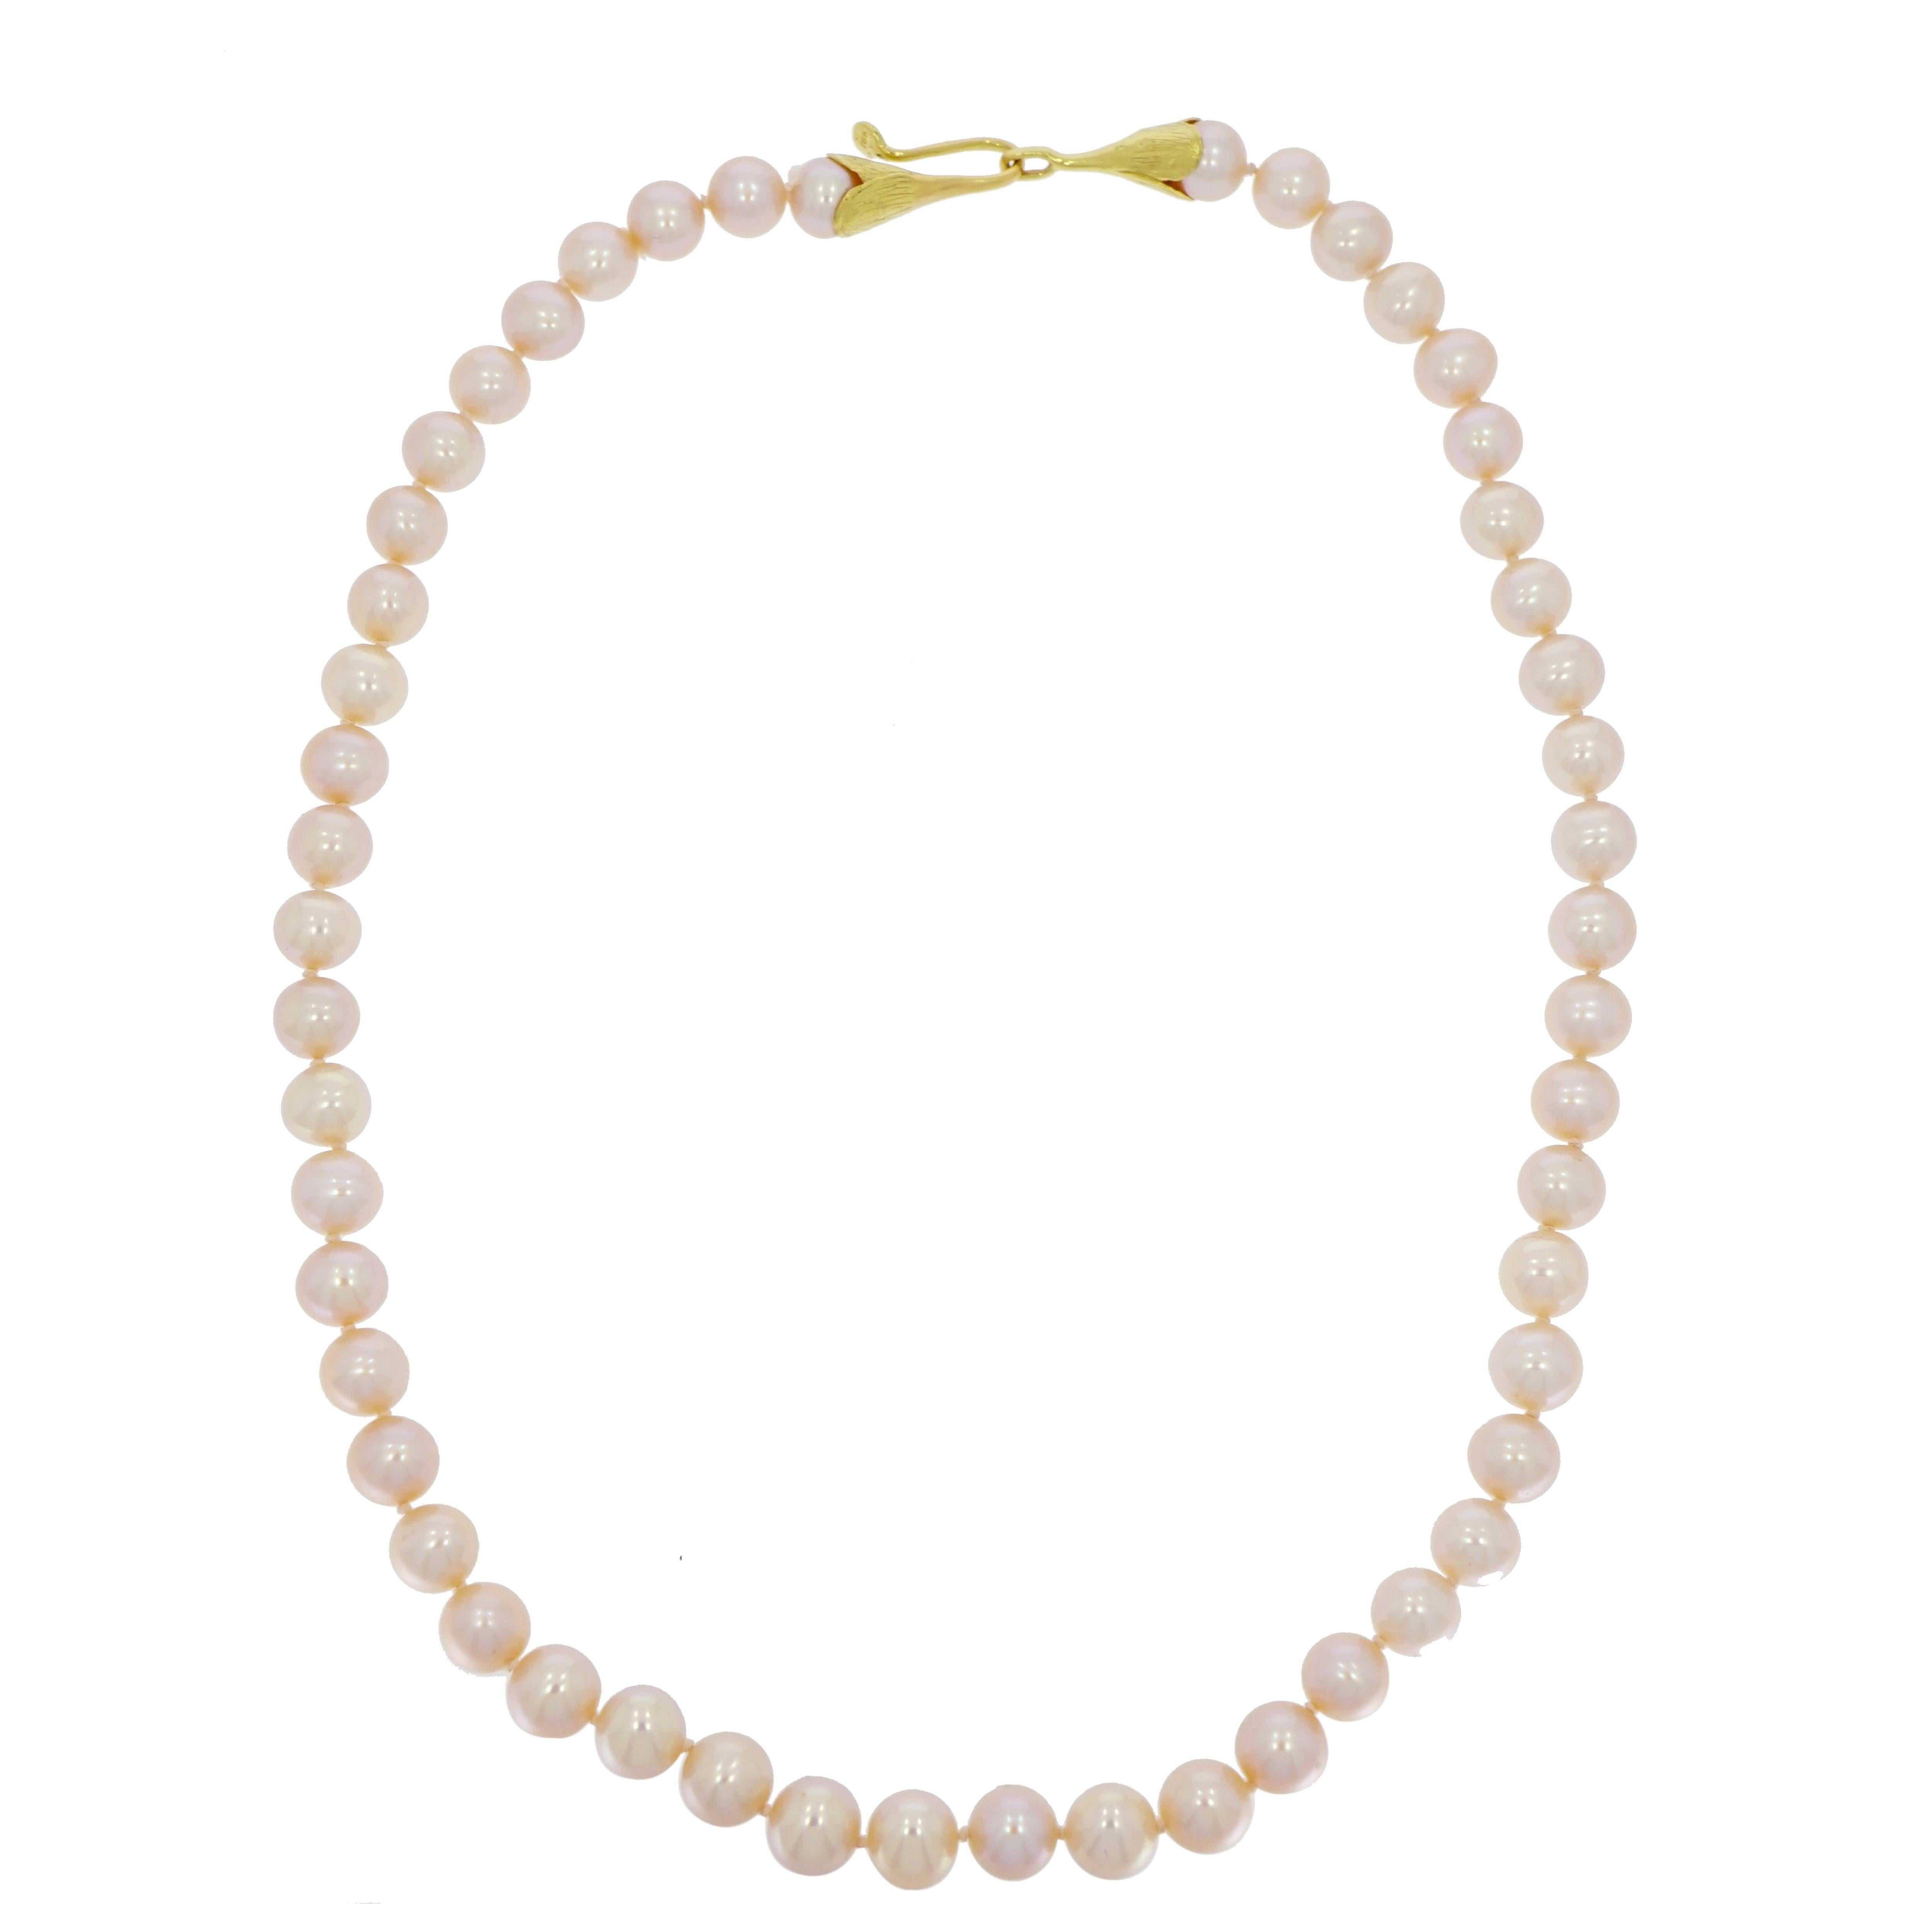 Pink Pearls Necklace with Yellow Gold Clasp